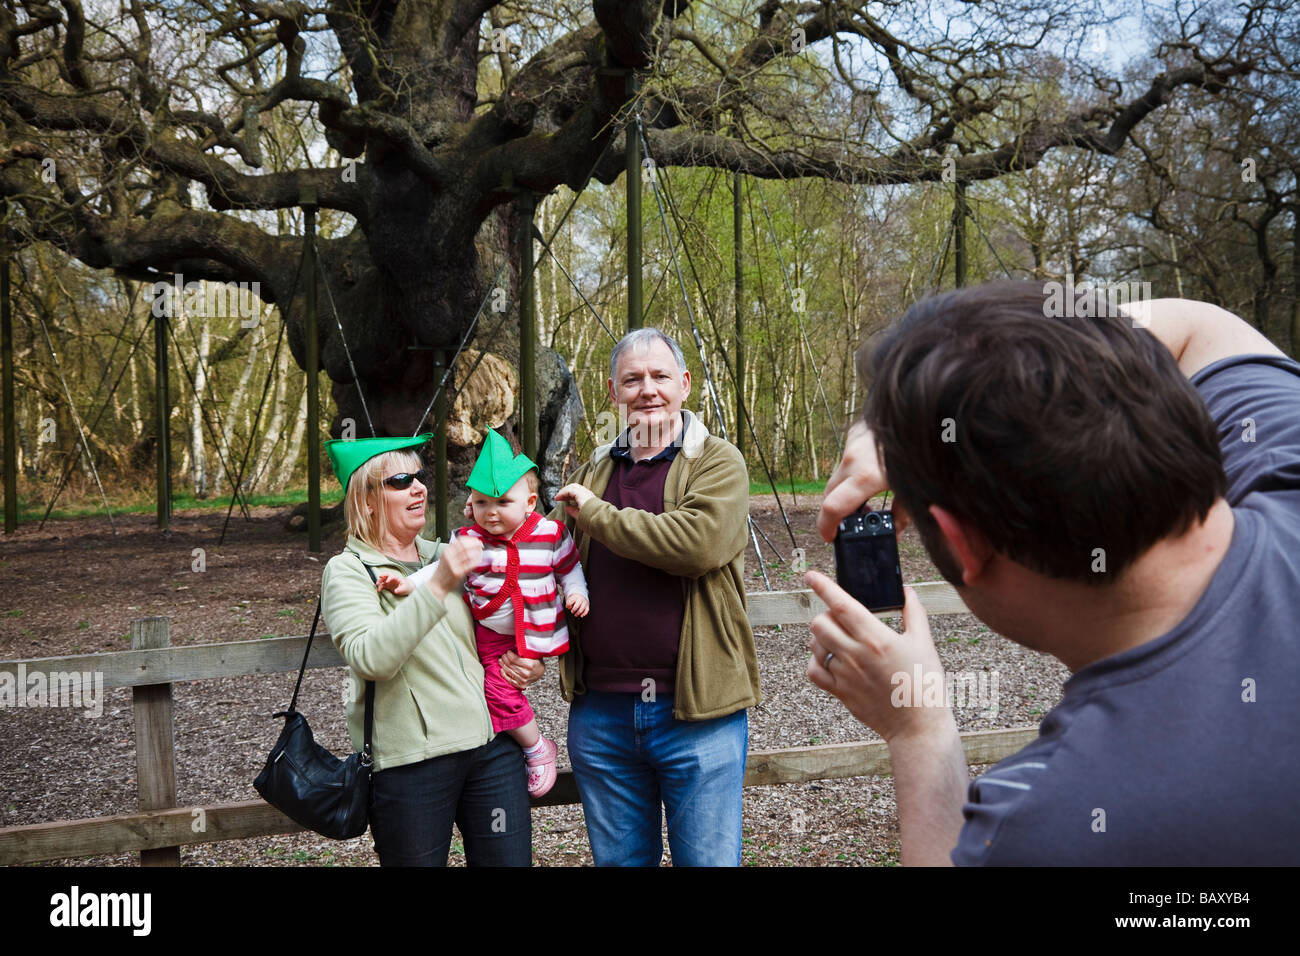 Tourists posing in 'Robin Hood' hats for a family photograph at the Major Oak, Sherwood Forest, Nottinghamshire. Stock Photo